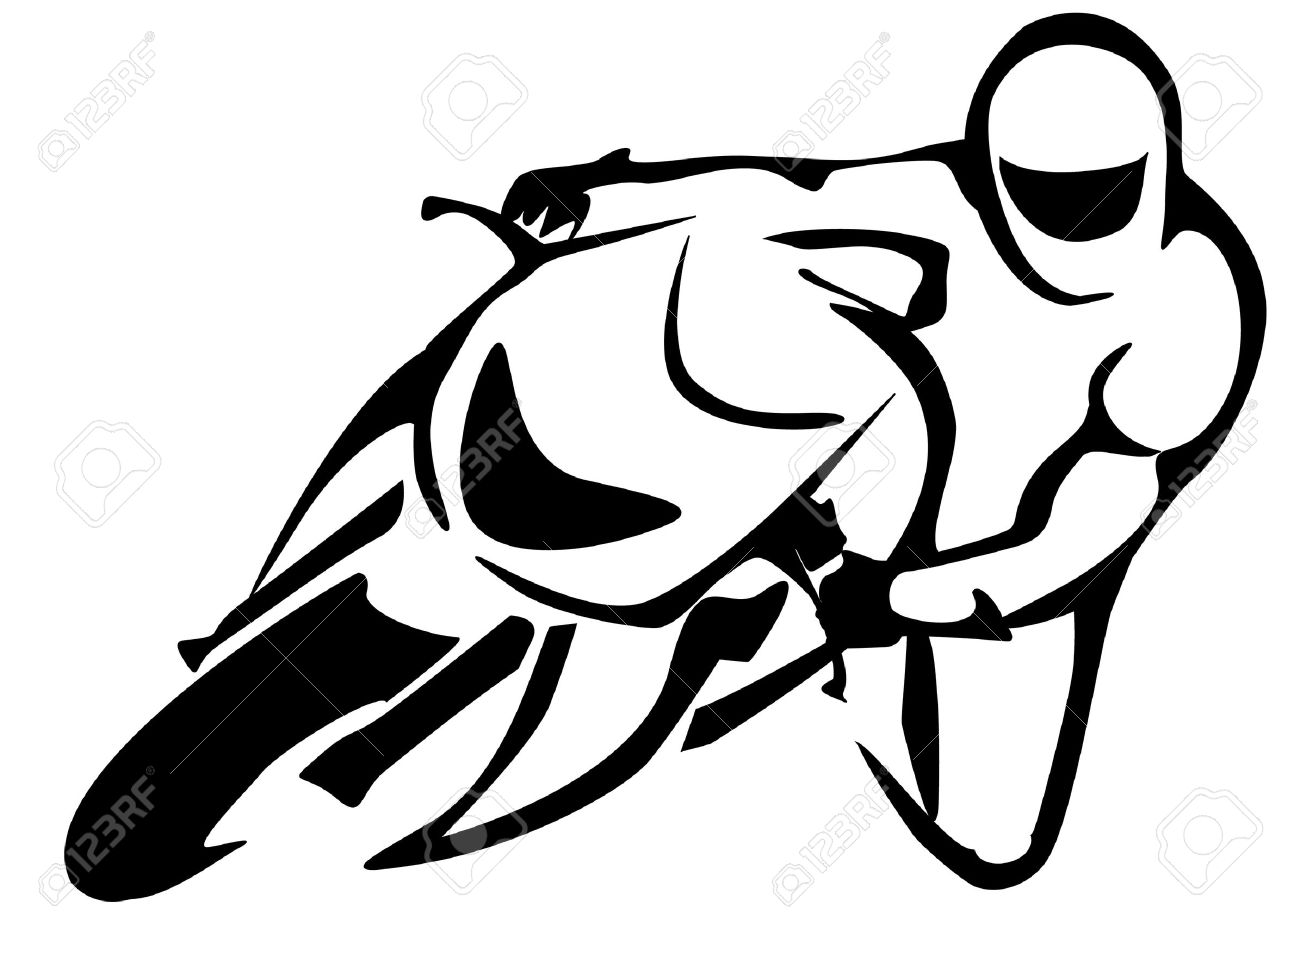 Motorcycle Silhouette Clipart